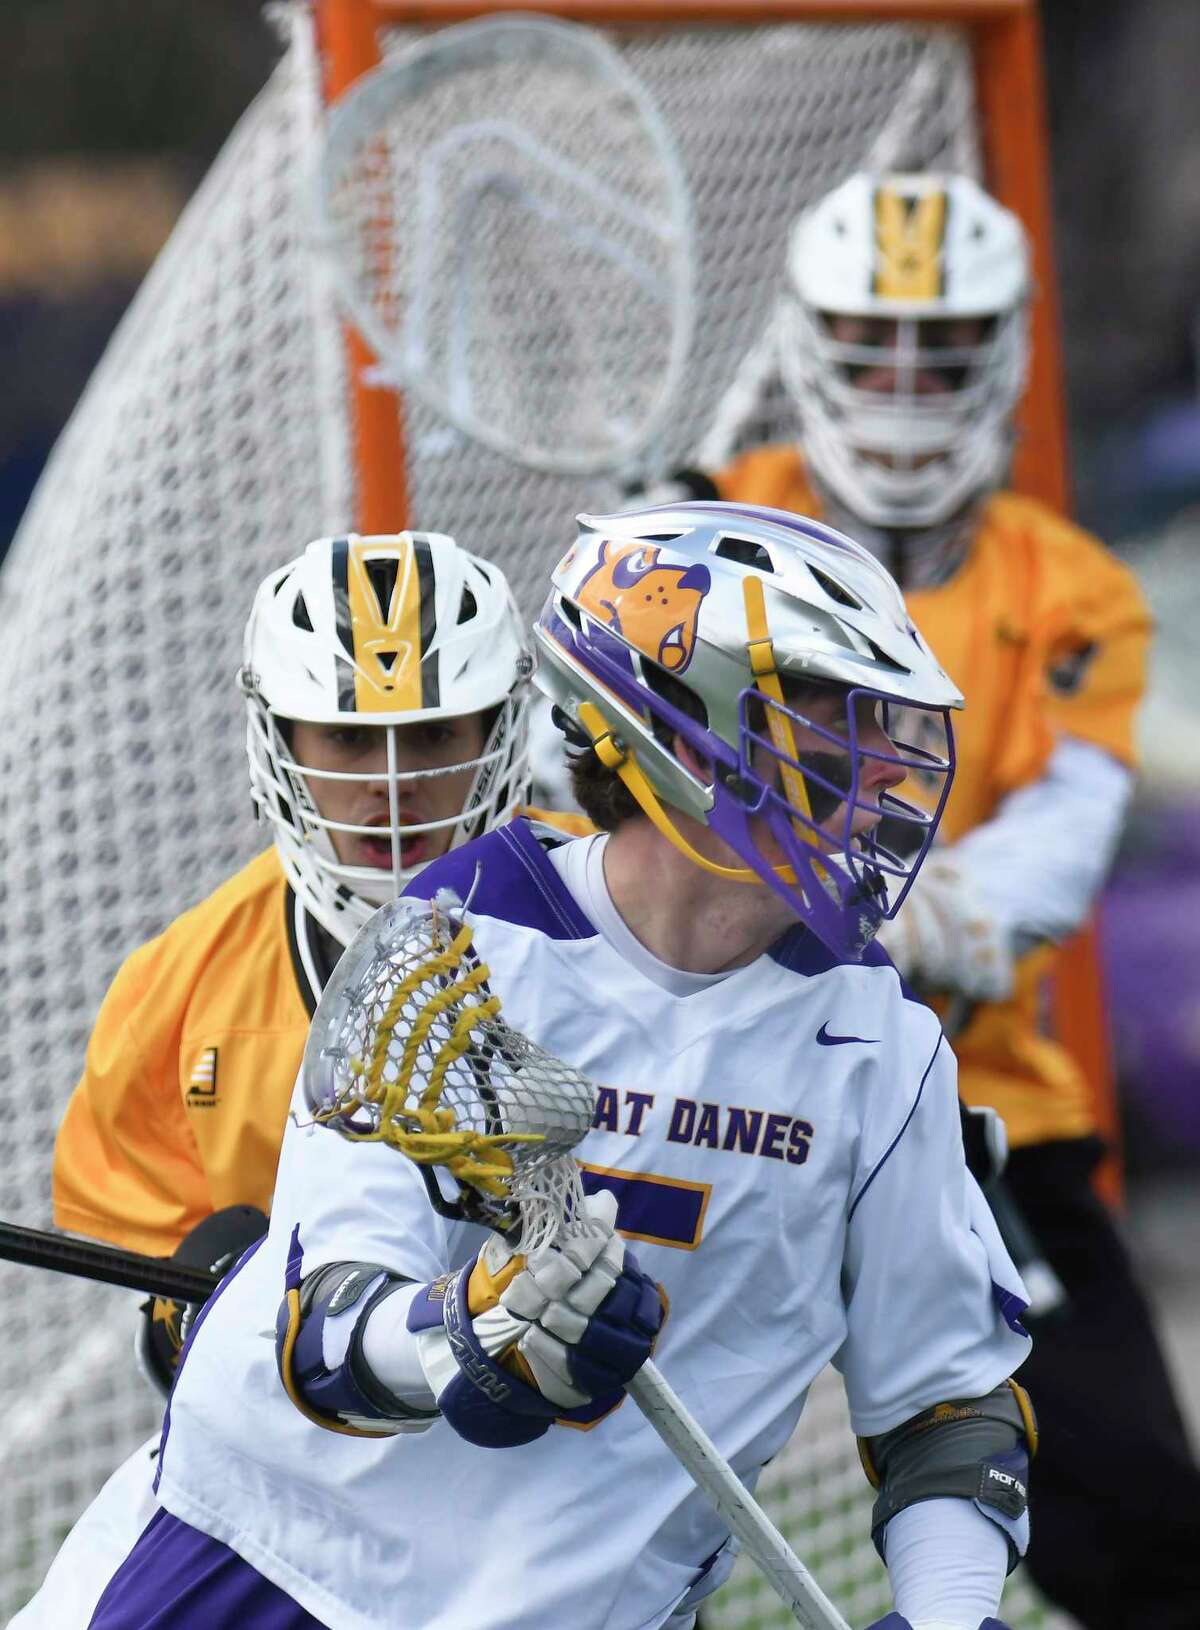 UAlbany's Connor Fields (5) moves the ball against UMBC's during a NCAA Division I men's lacrosse game on Saturday, April 7, 2017, in Albany, N.Y. (Hans Pennink / Special to the Times Union) ORG XMIT: HP119